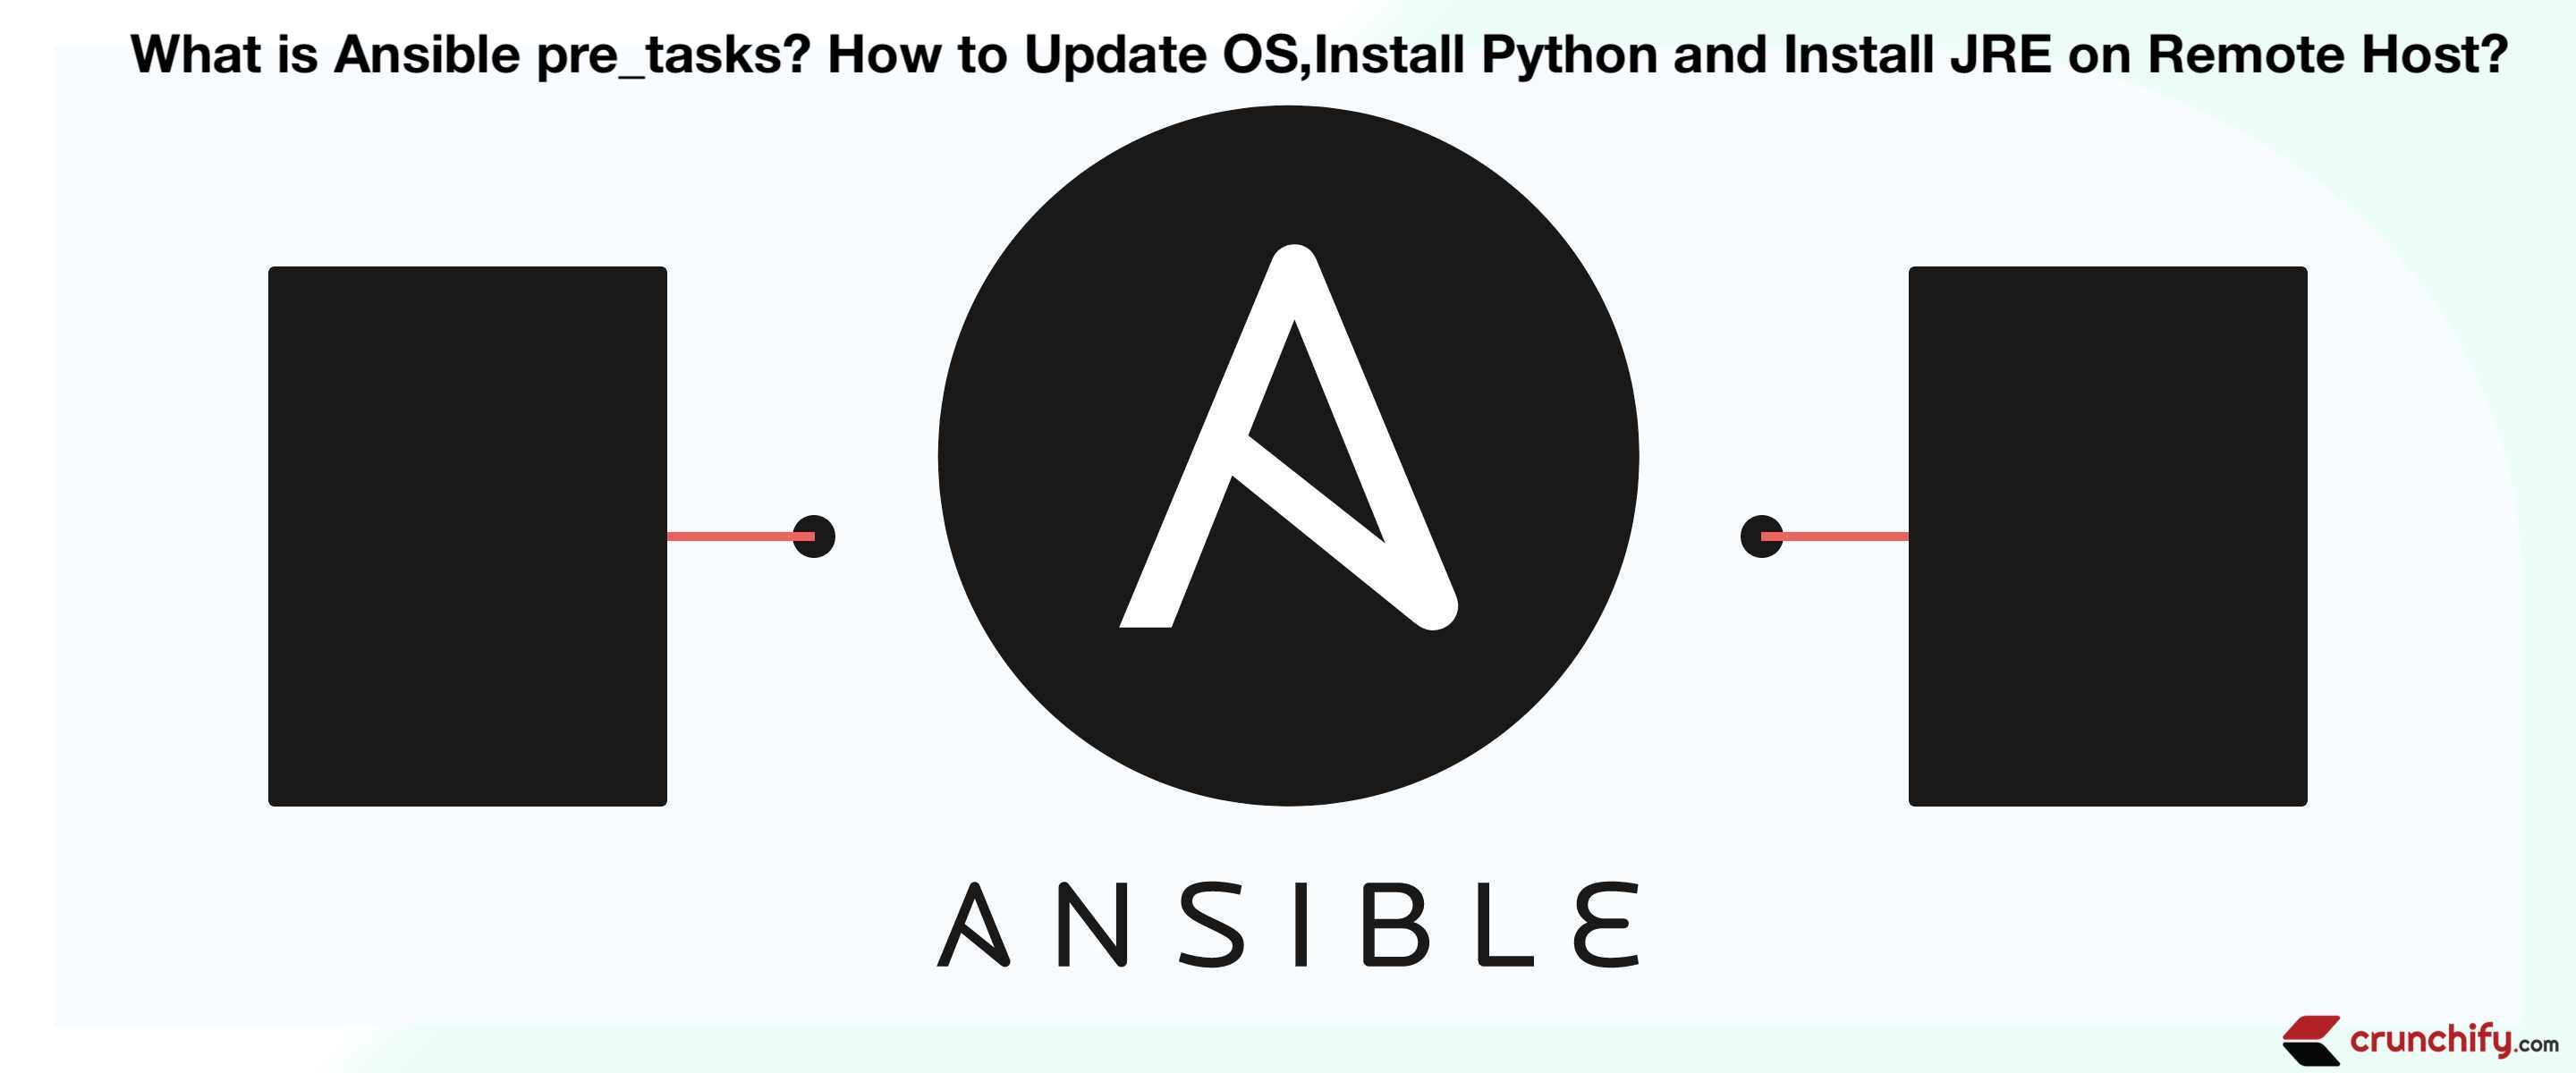 What is Ansible pre_tasks? How to Update OS, Install Python